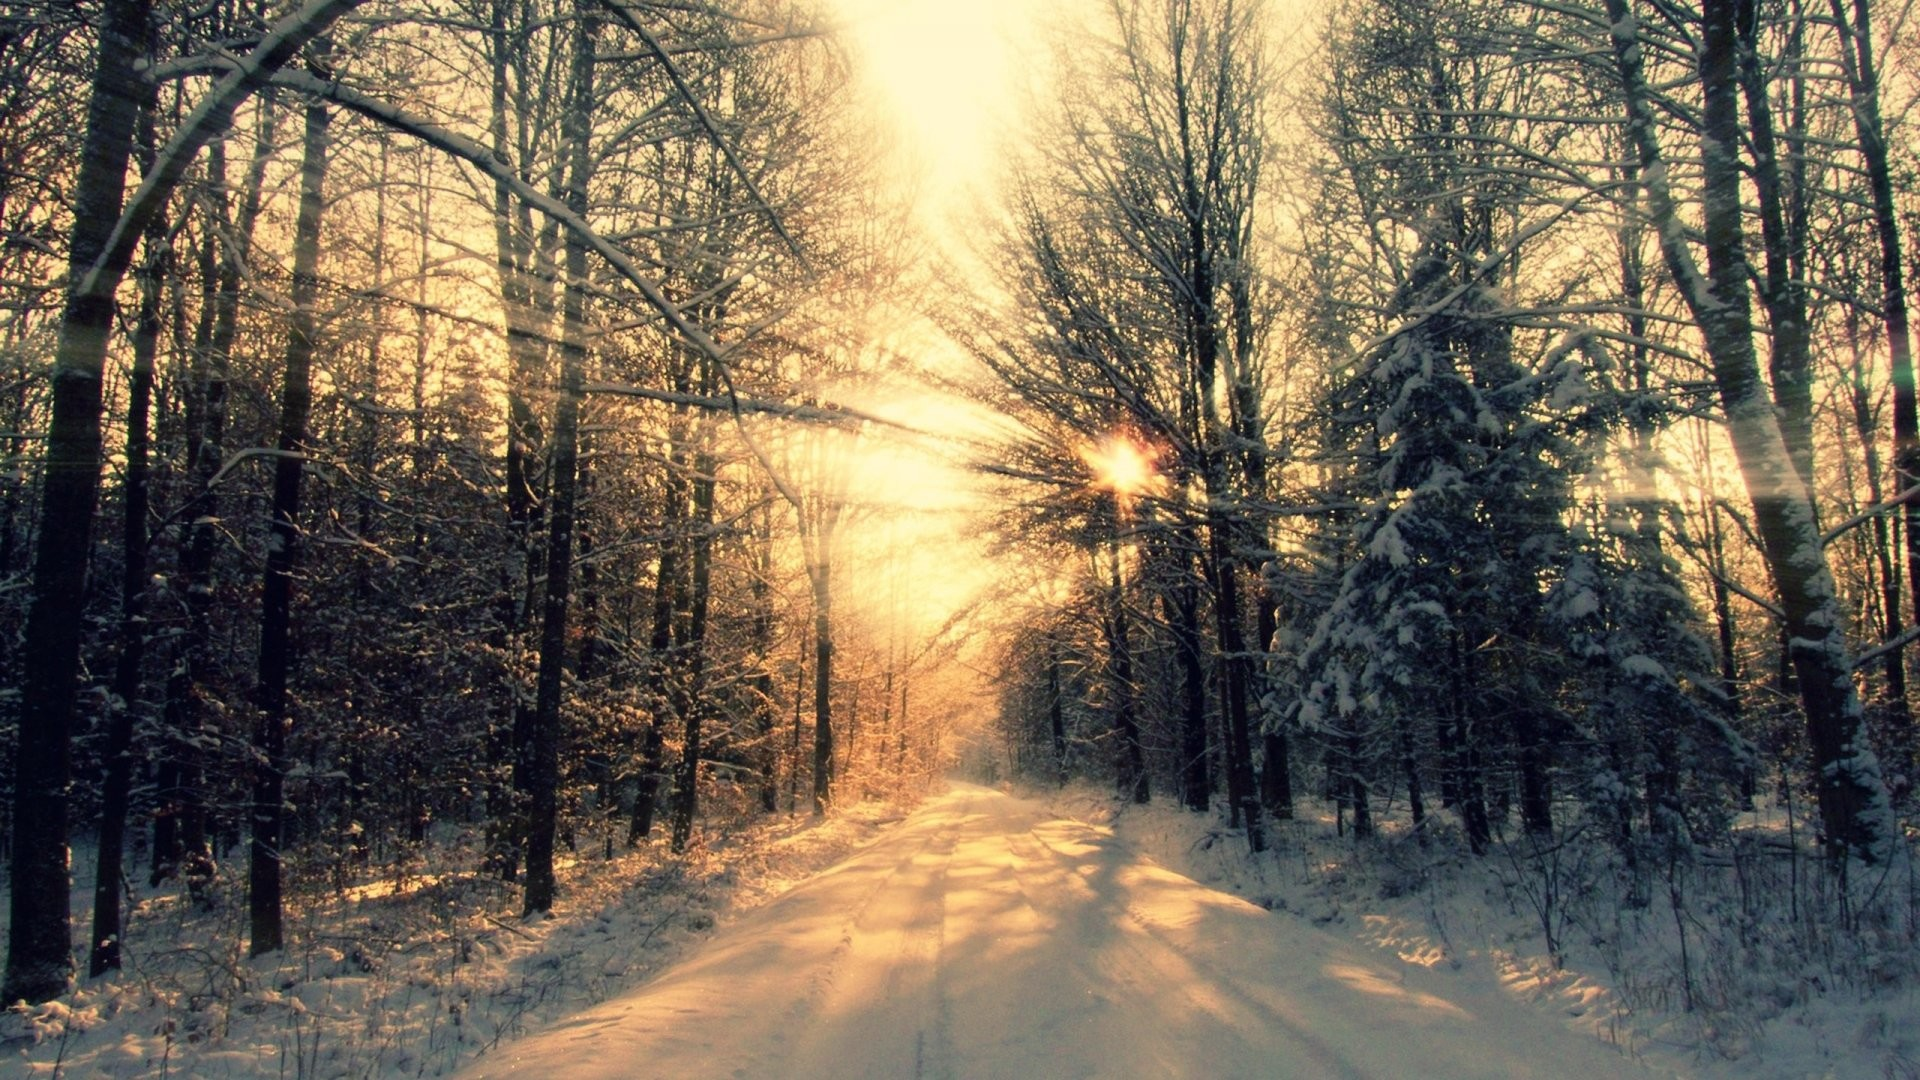 Wallpaper Winter Forest K K Wallpaper Mountain Sun - Winter Desktop Backgrounds - HD Wallpaper